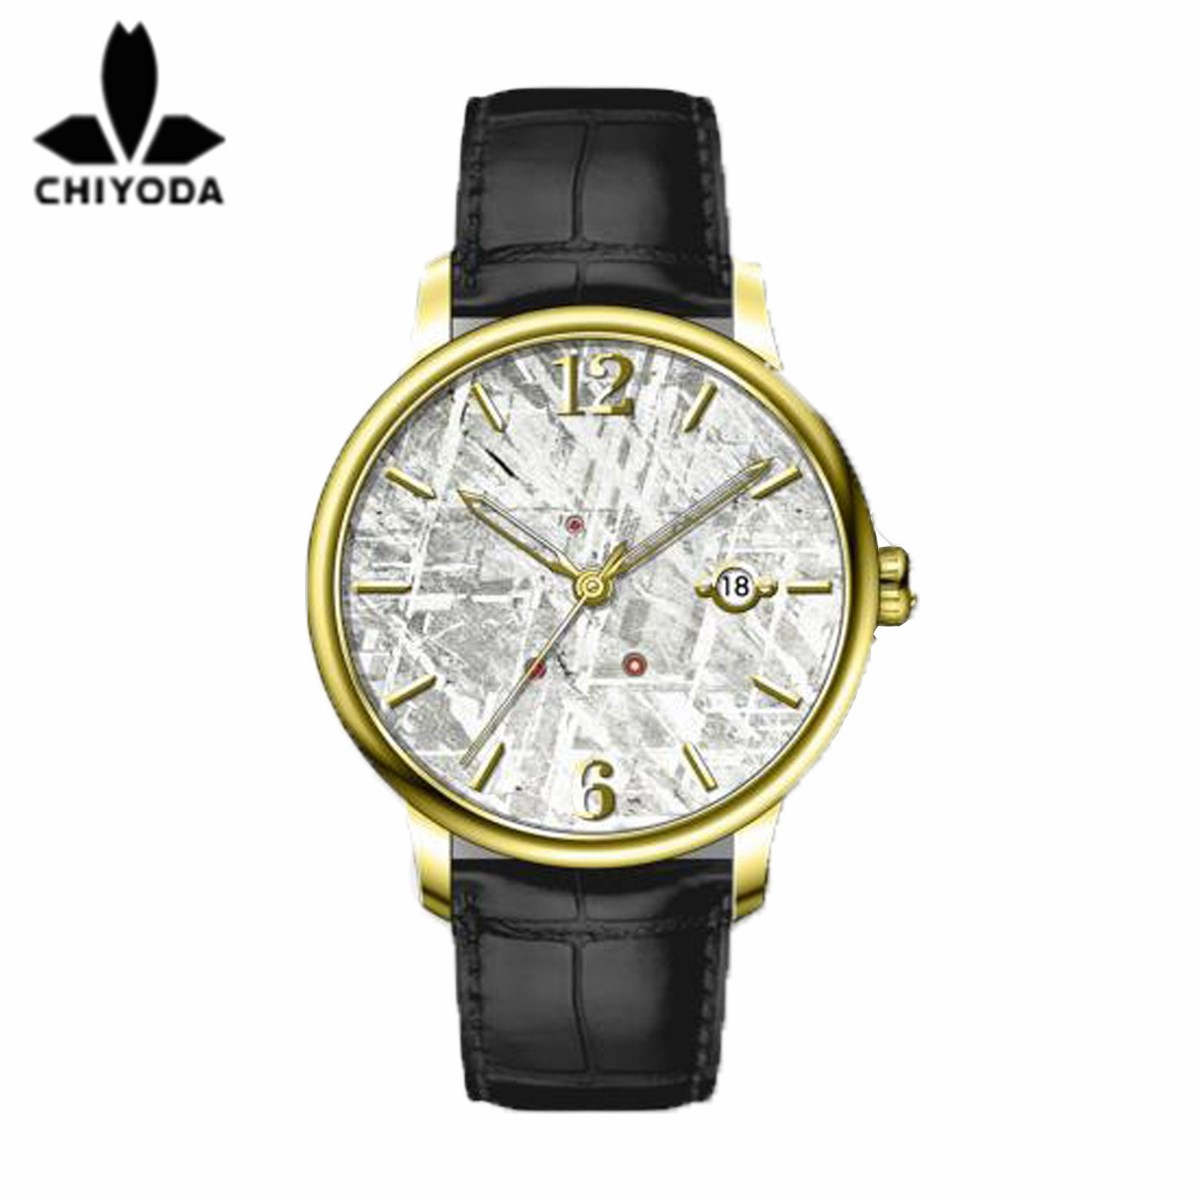 CHIYODA Mens Luxury Gold Automatic Watch with Classical Meteorite Dial Swiss Movement Leather Strap Meteorite 02